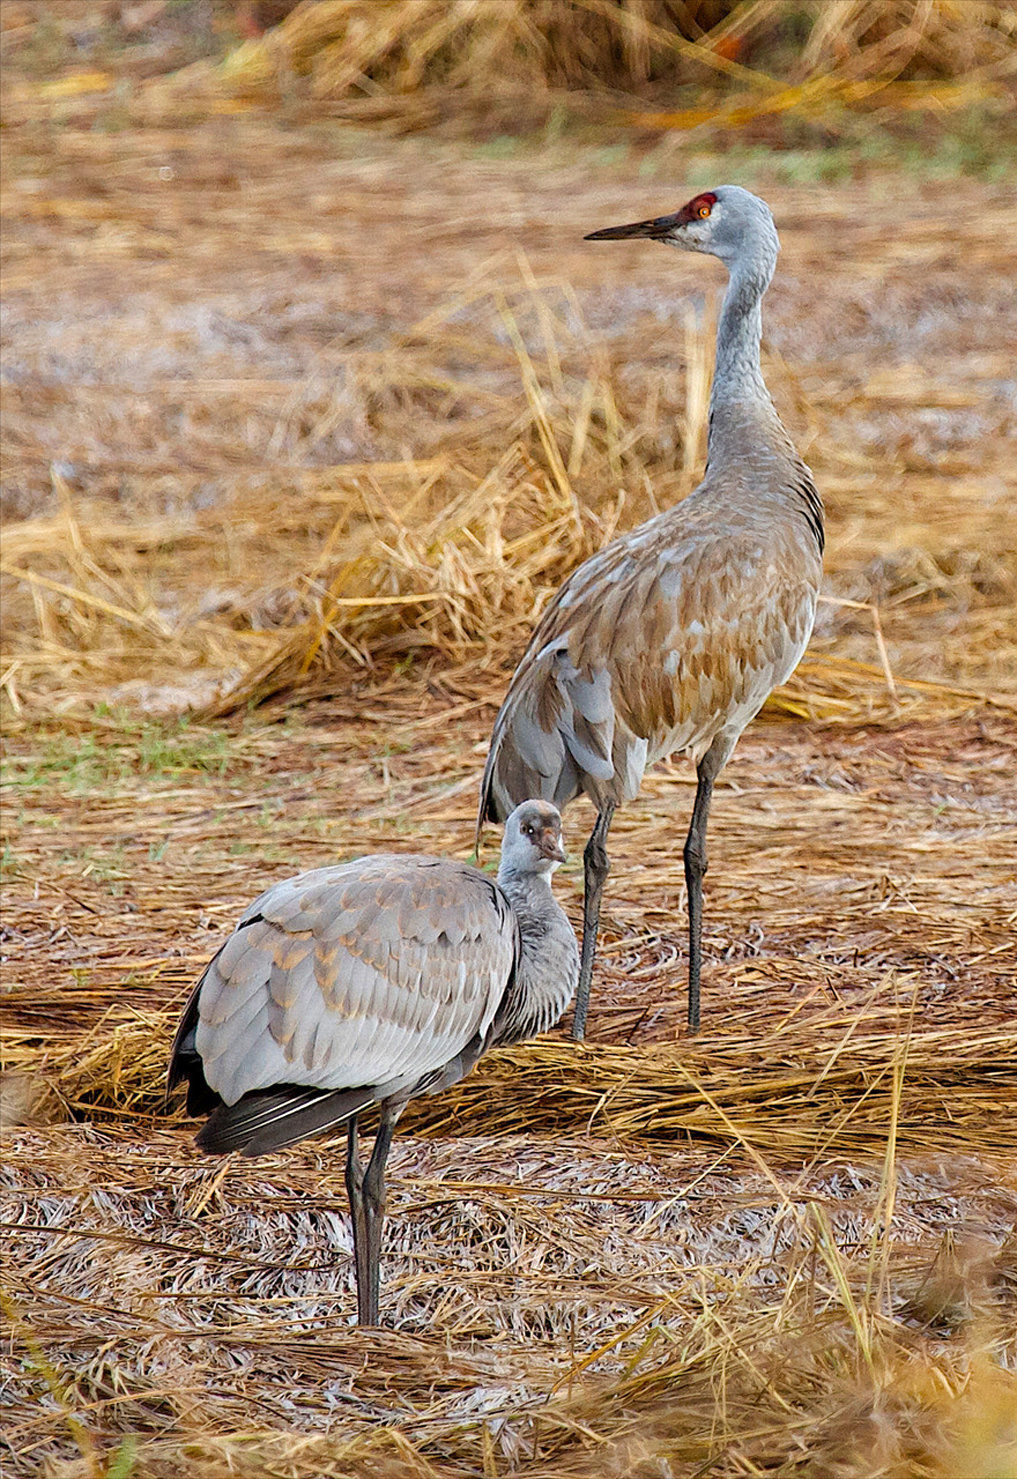 Birdwatching:  Willapa offers chances to see charismatic Sandhill cranes